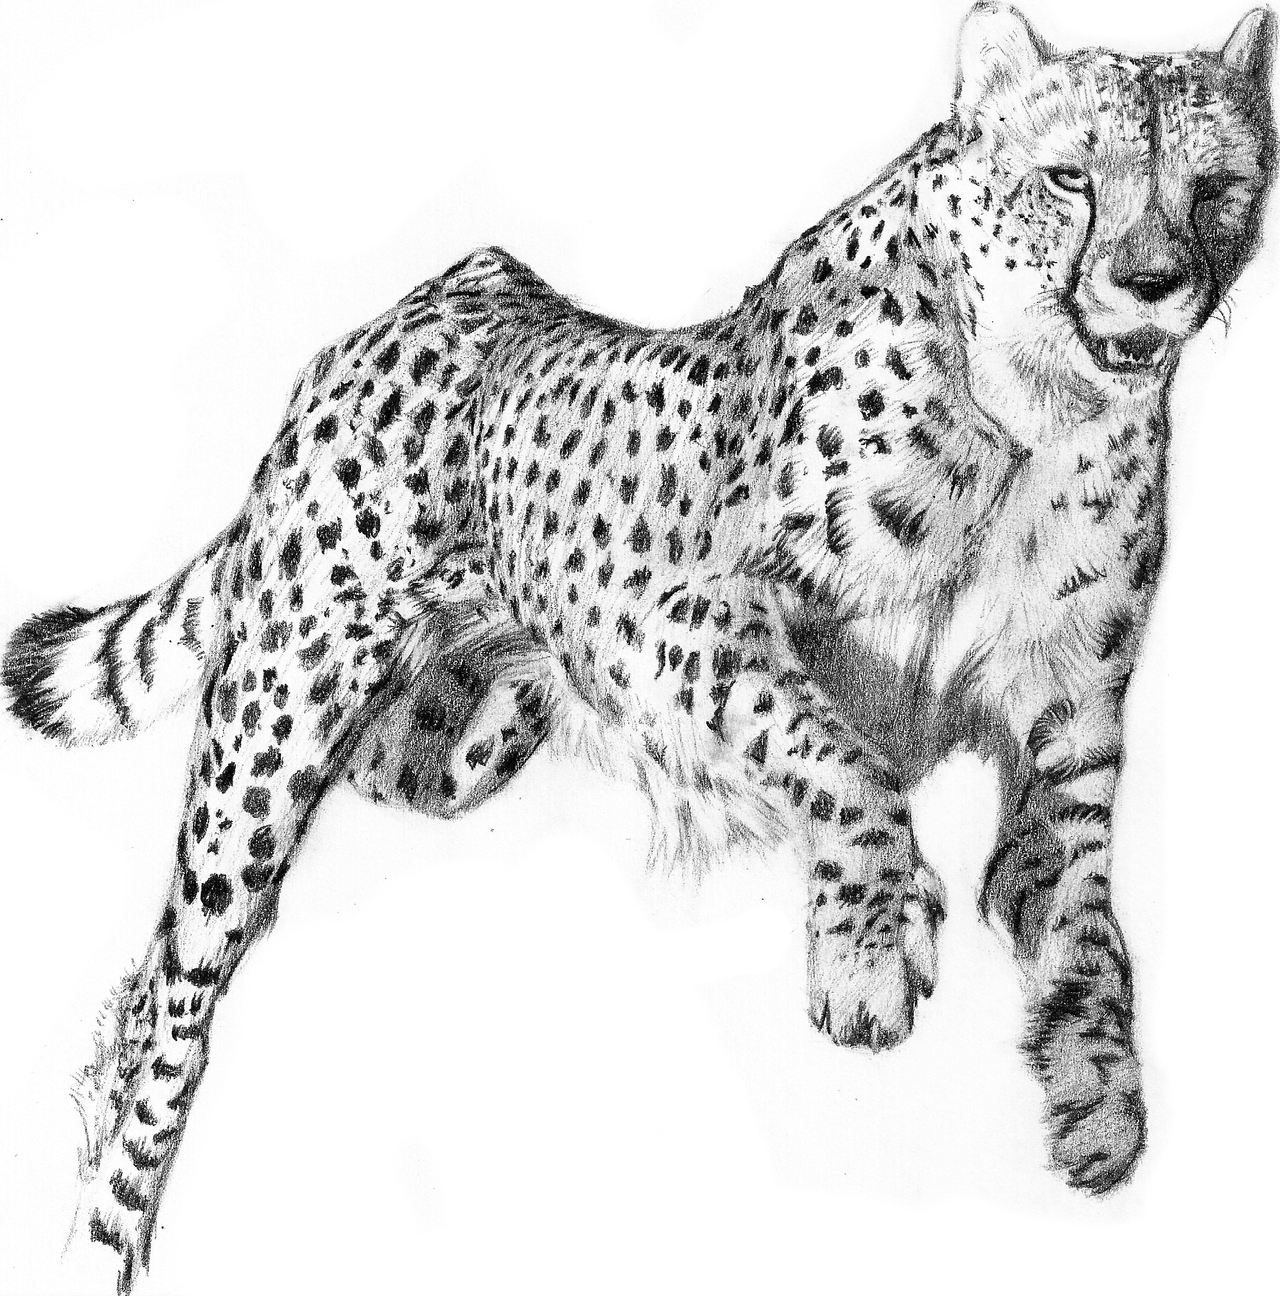 Drawn pice cheetah (pencil work) Lakana by baby